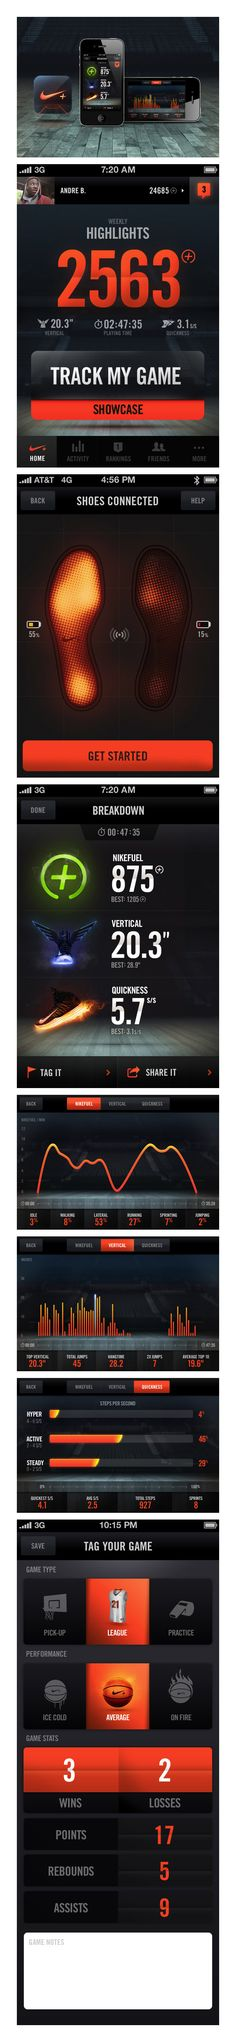 Nike+ Basketball by Jordan Fripp, via Behance.  Category: Web Design / Graphics Design / User Interface (UI)